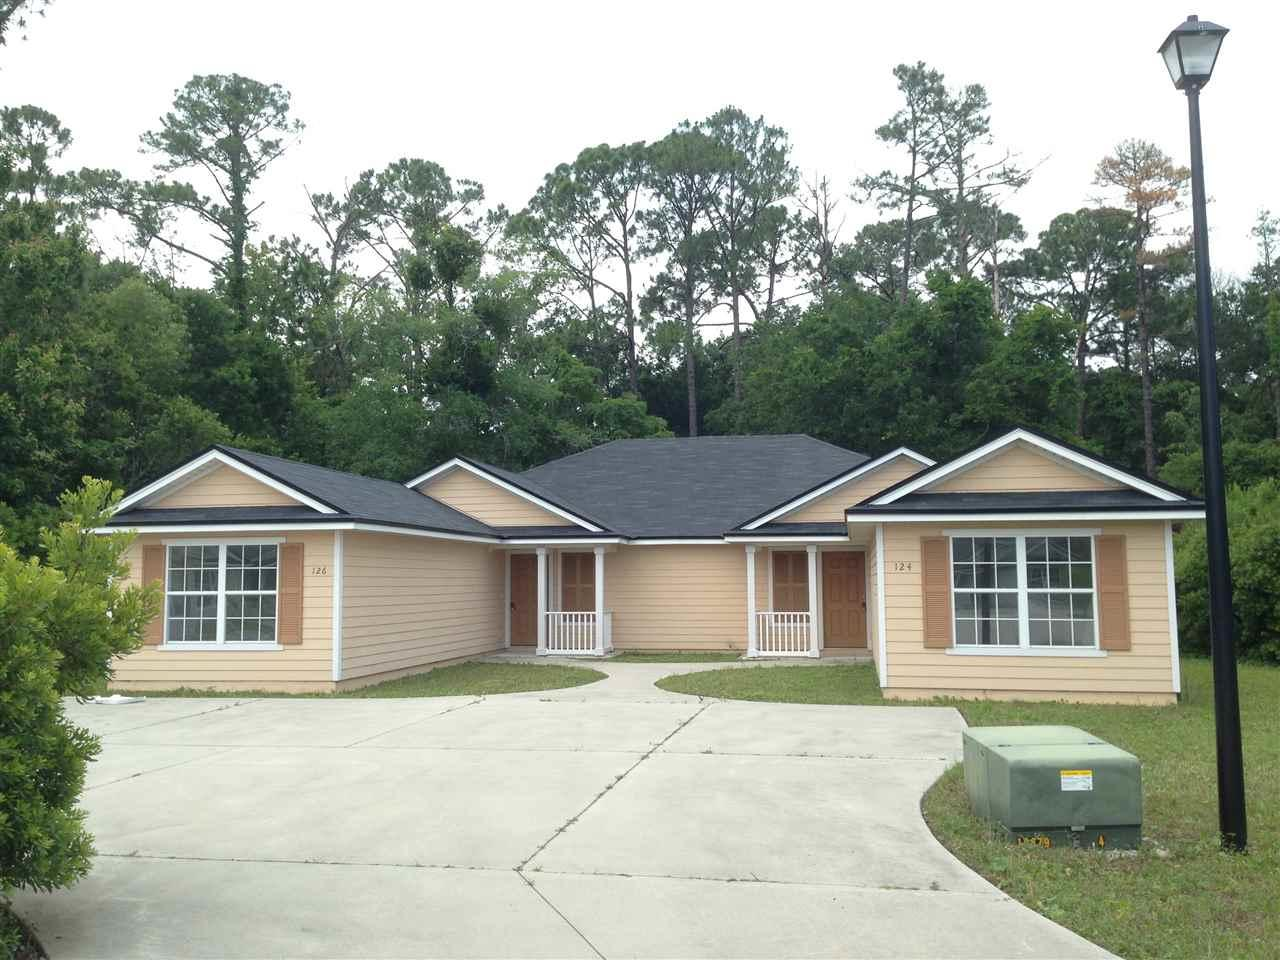 126 Plantation Point Drive - Photo 1